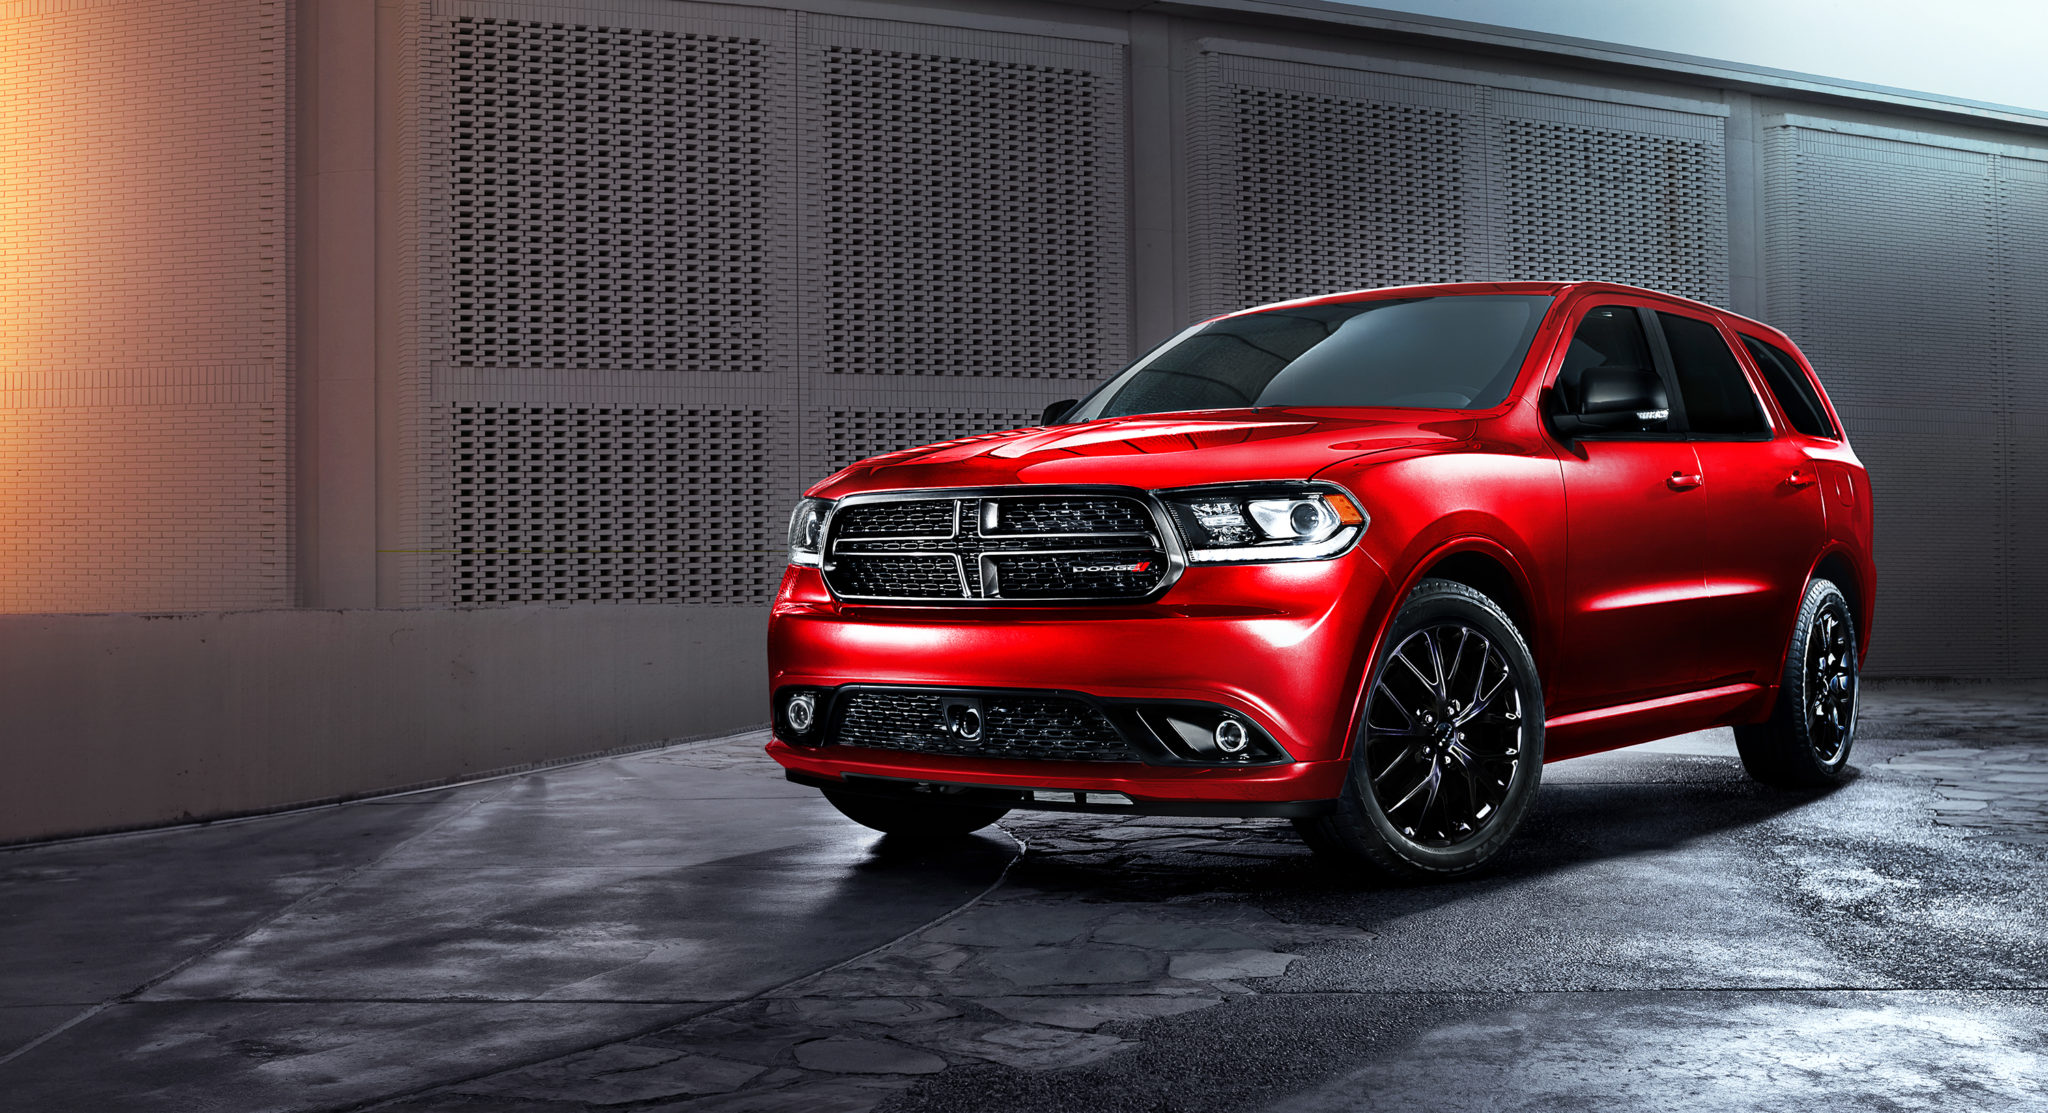 Does the 2017 Dodge Durango have It factor